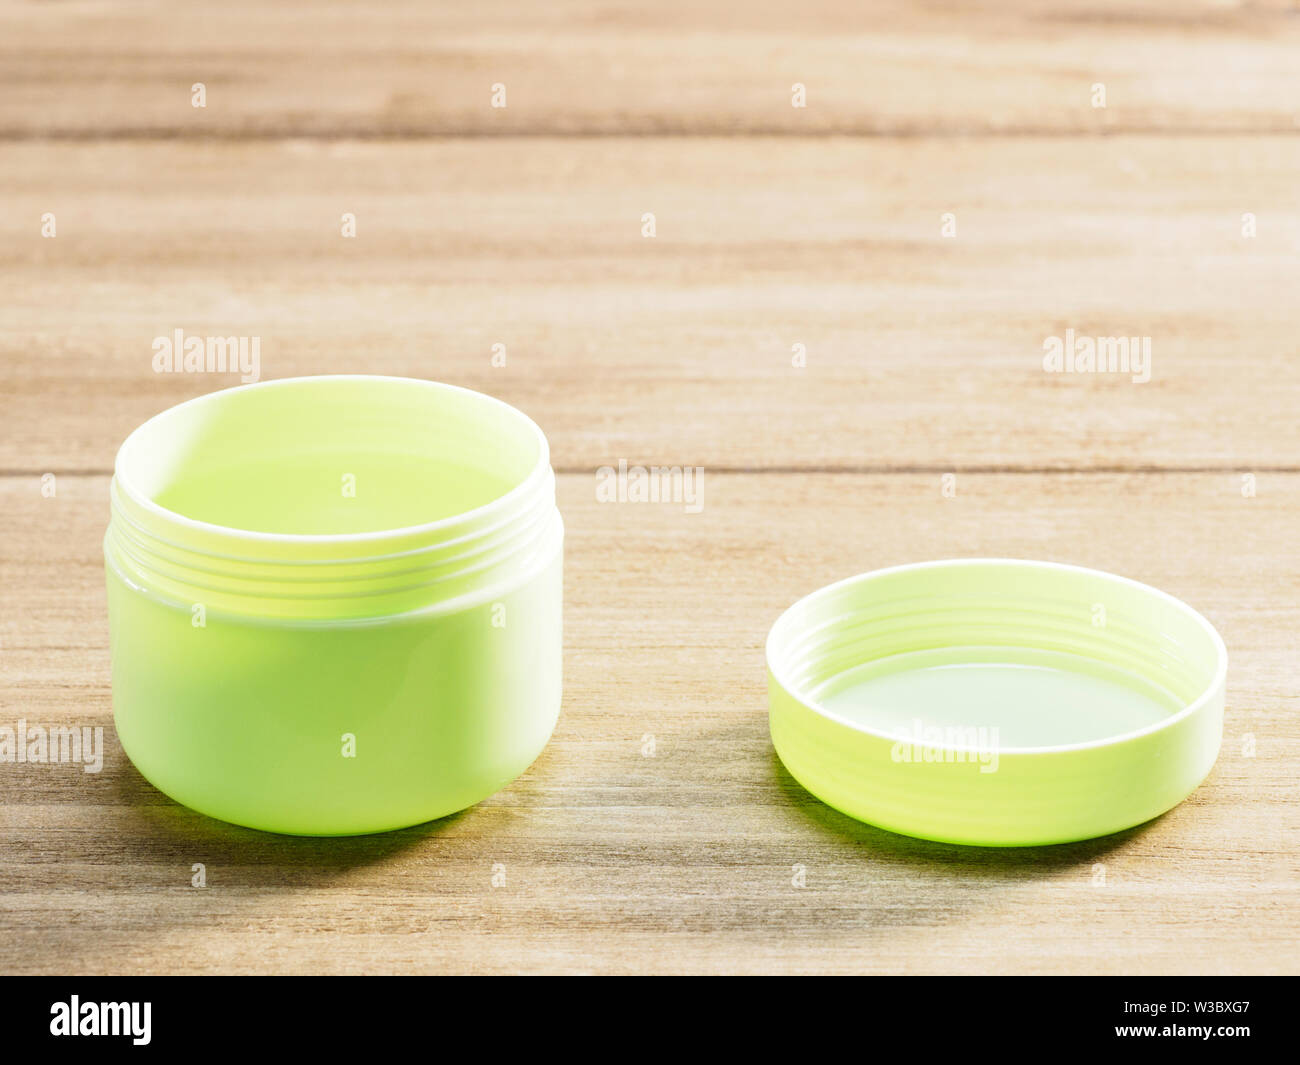 Green cup for cosmetic products with open cap isolated on wooden background - Stock Image